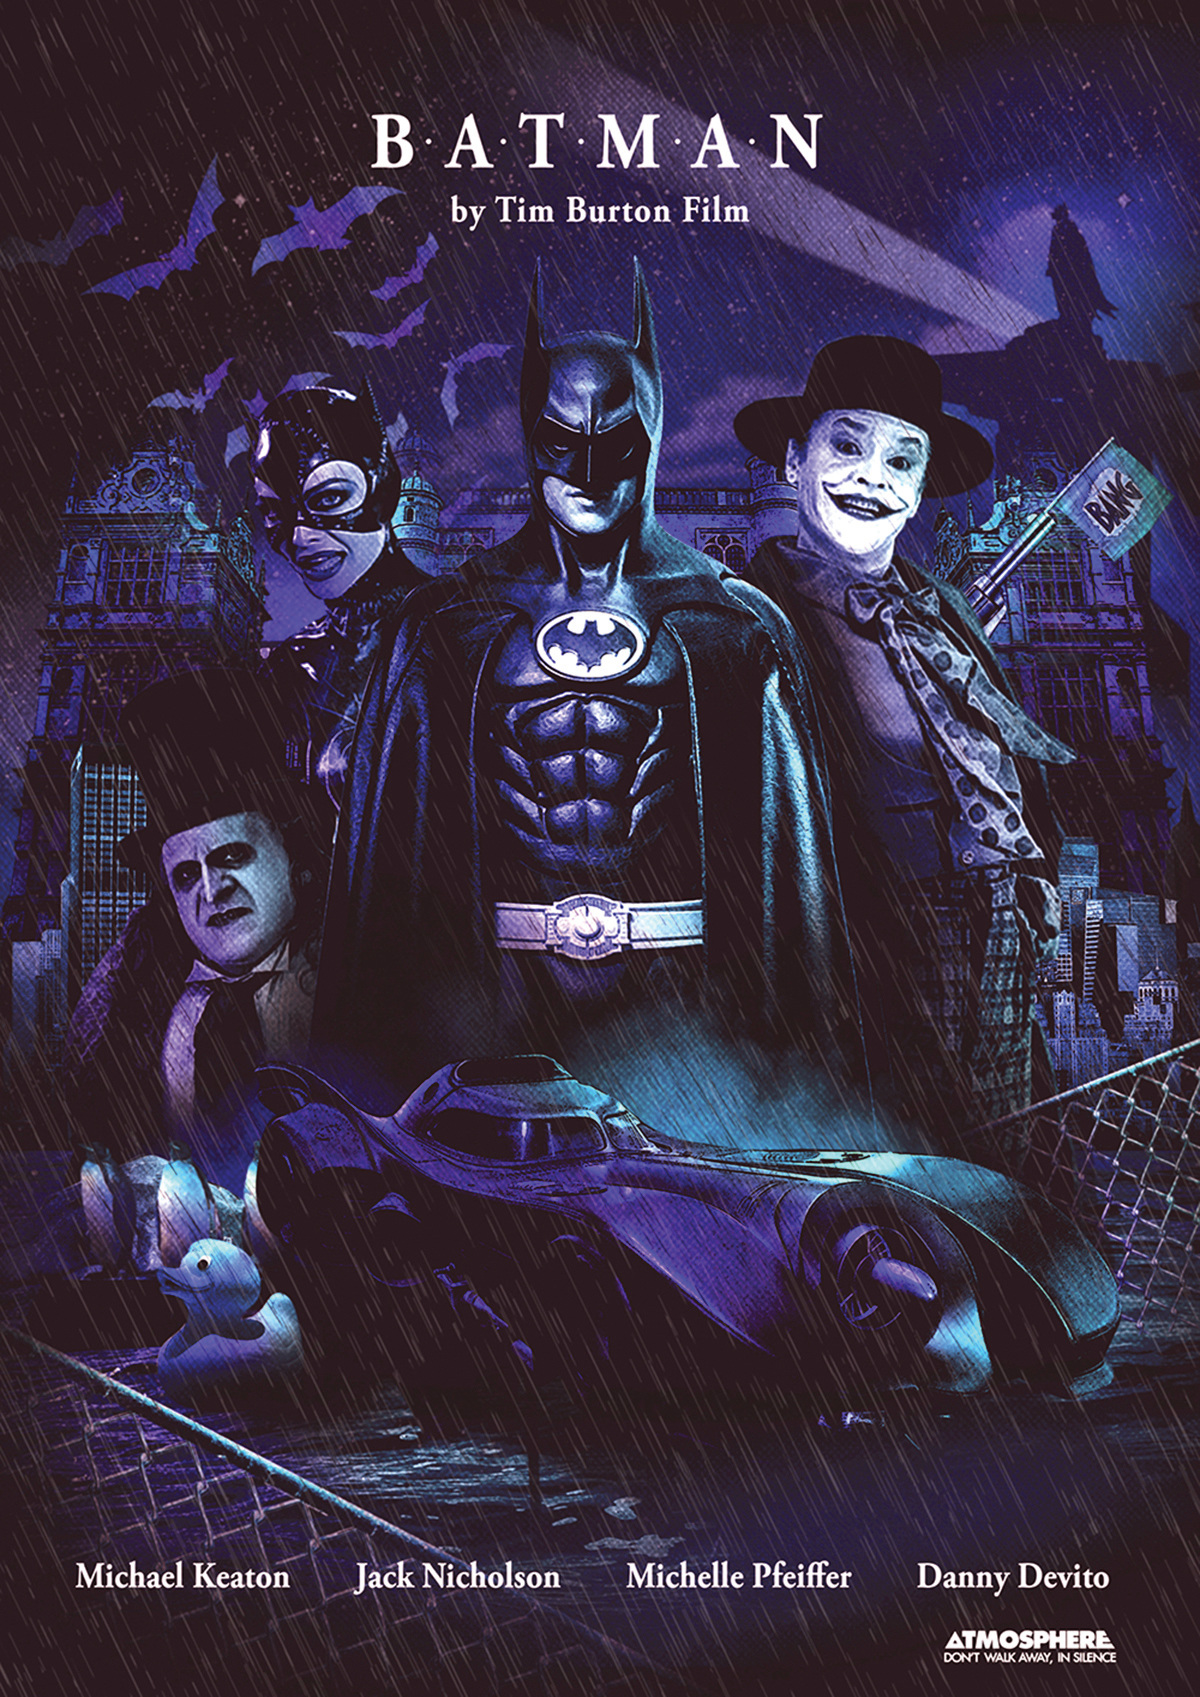 poster tim burton batman